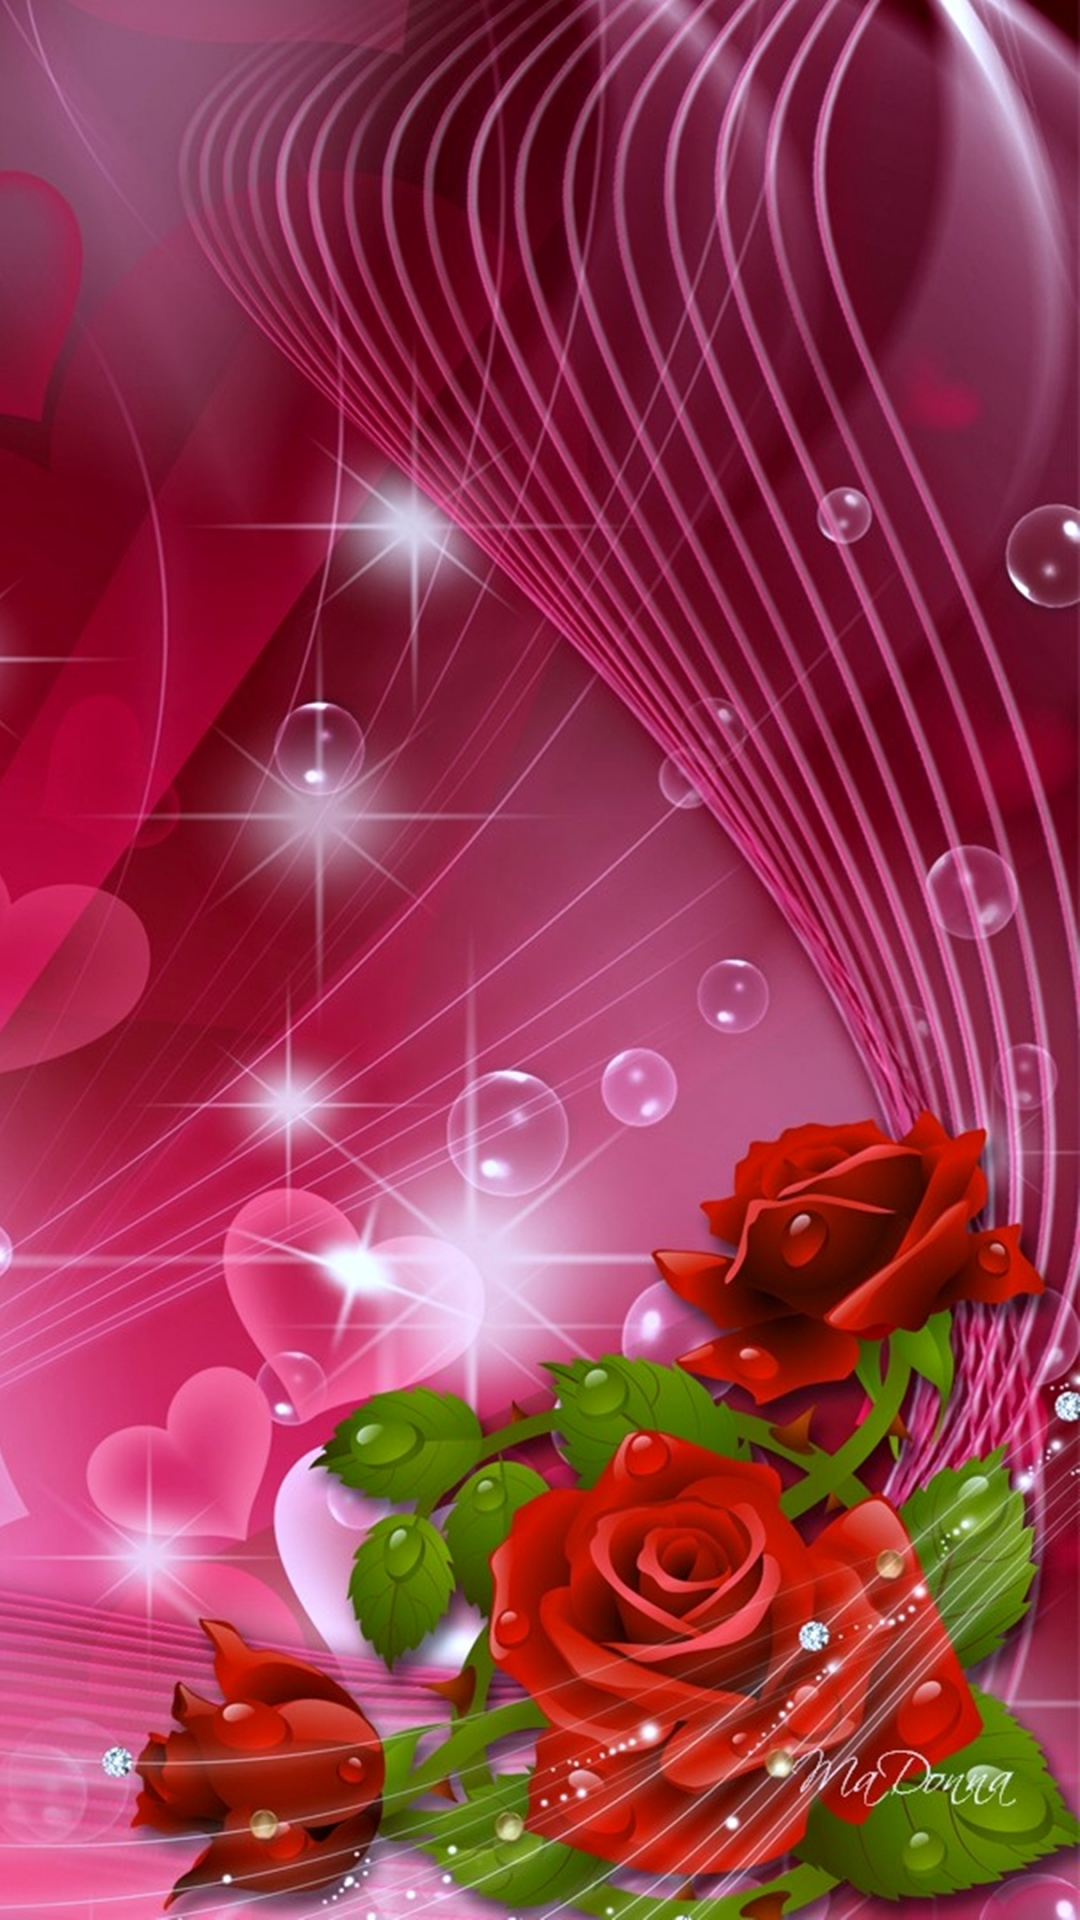 romantic wallpapers for mobile